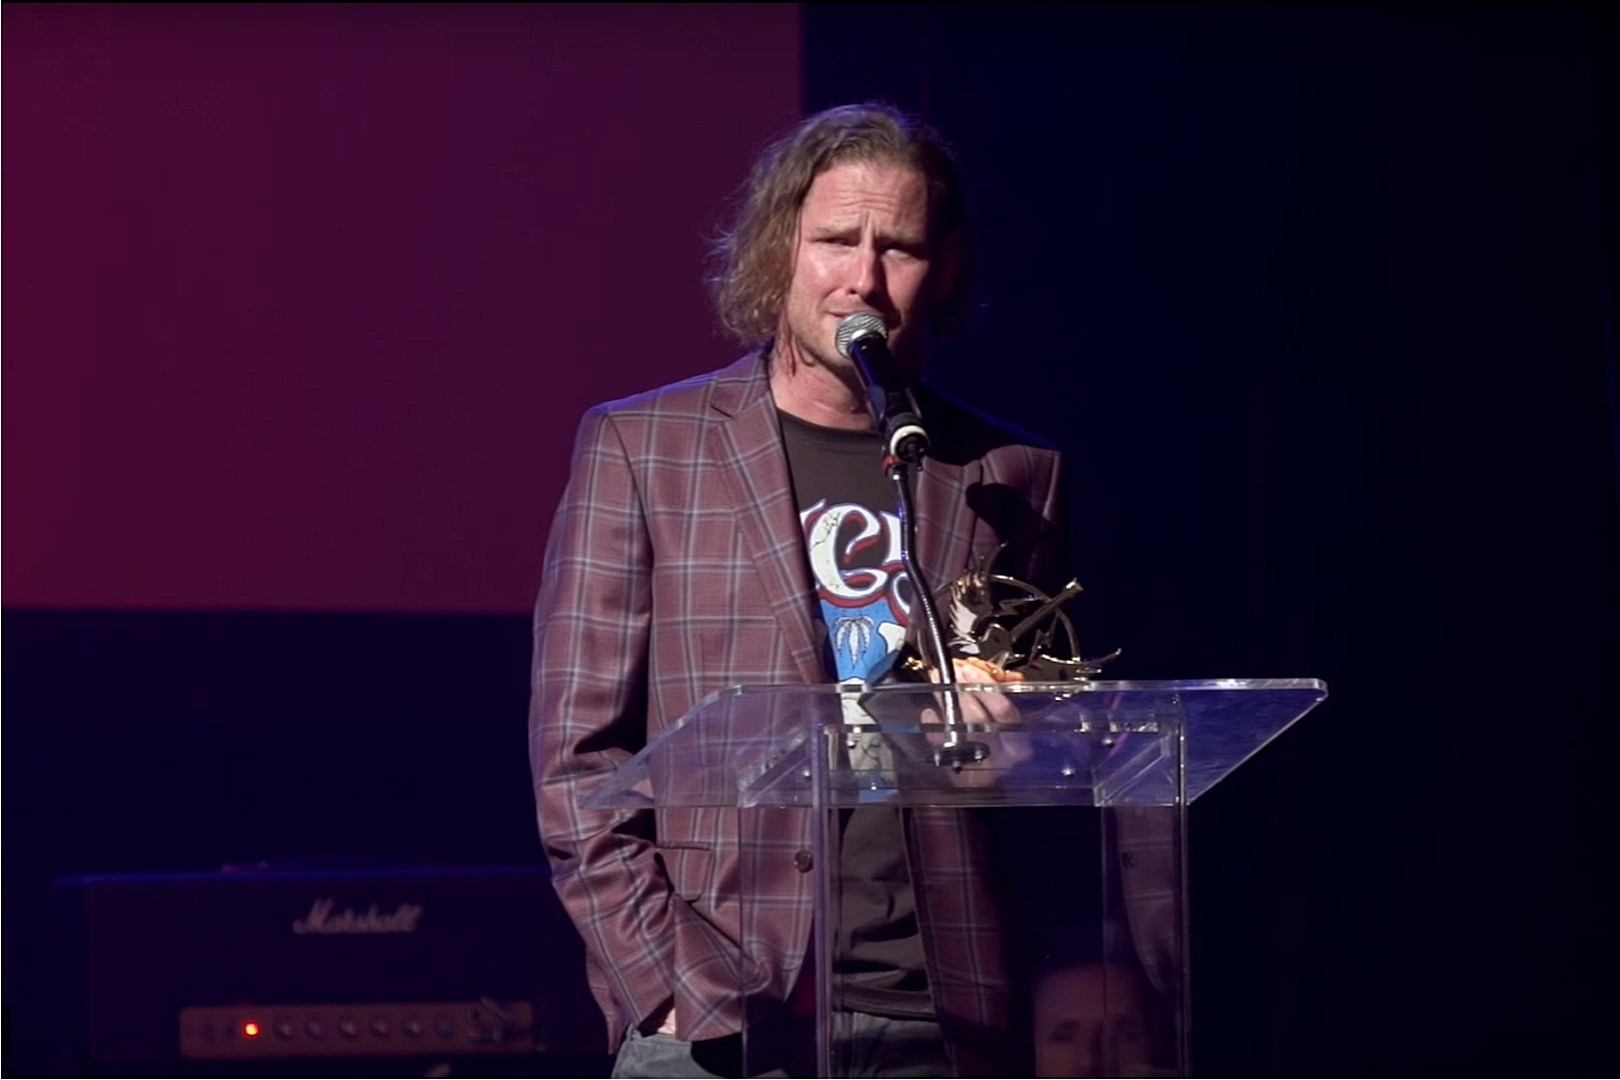 Watch Corey Taylor Give Emotional Rock to Recovery Acceptance Speech